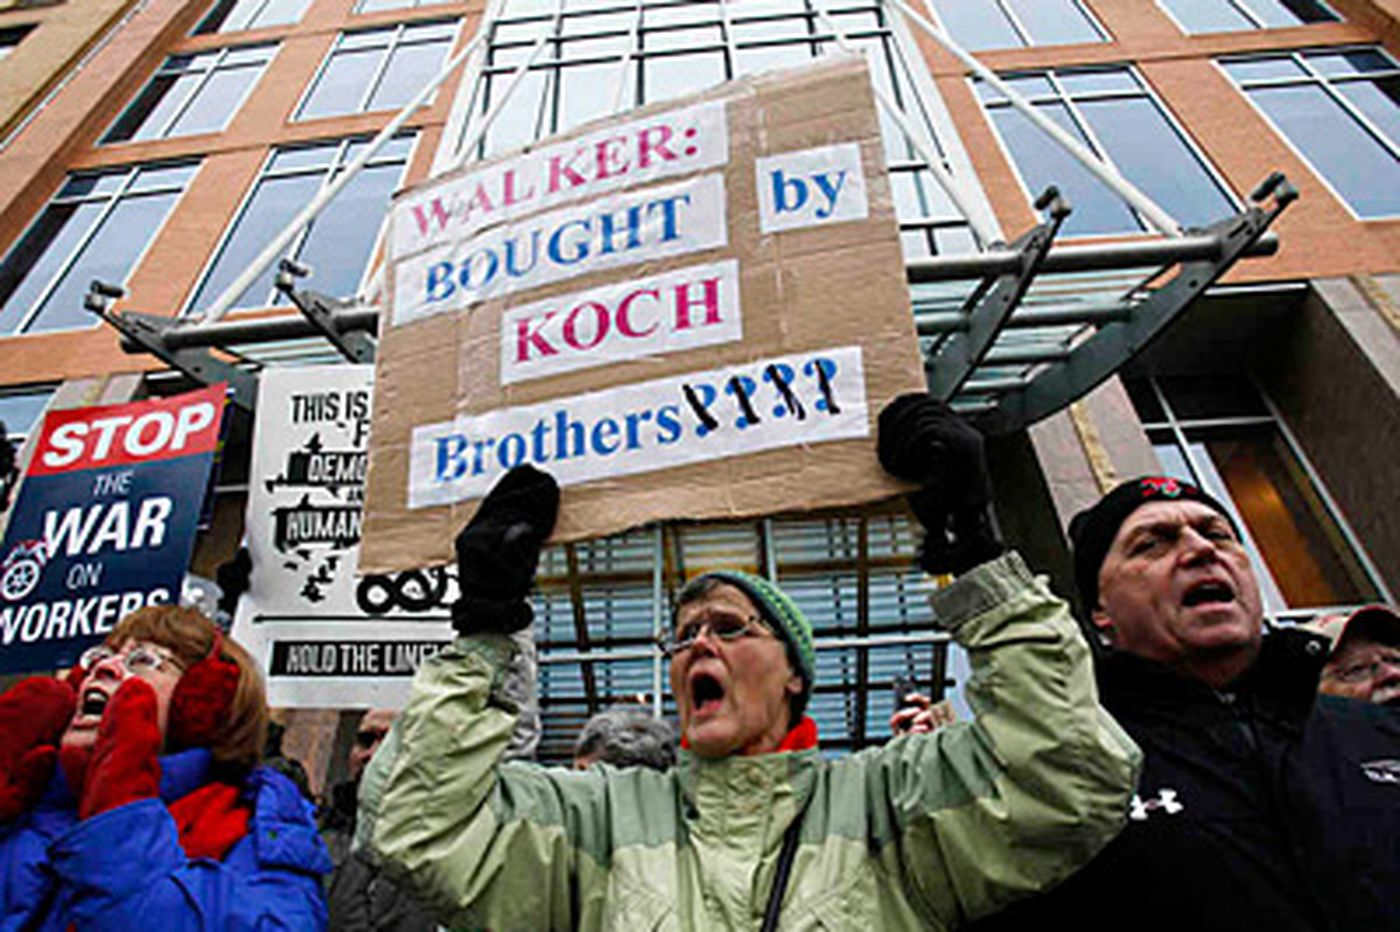 Union-busting brothers heading our way